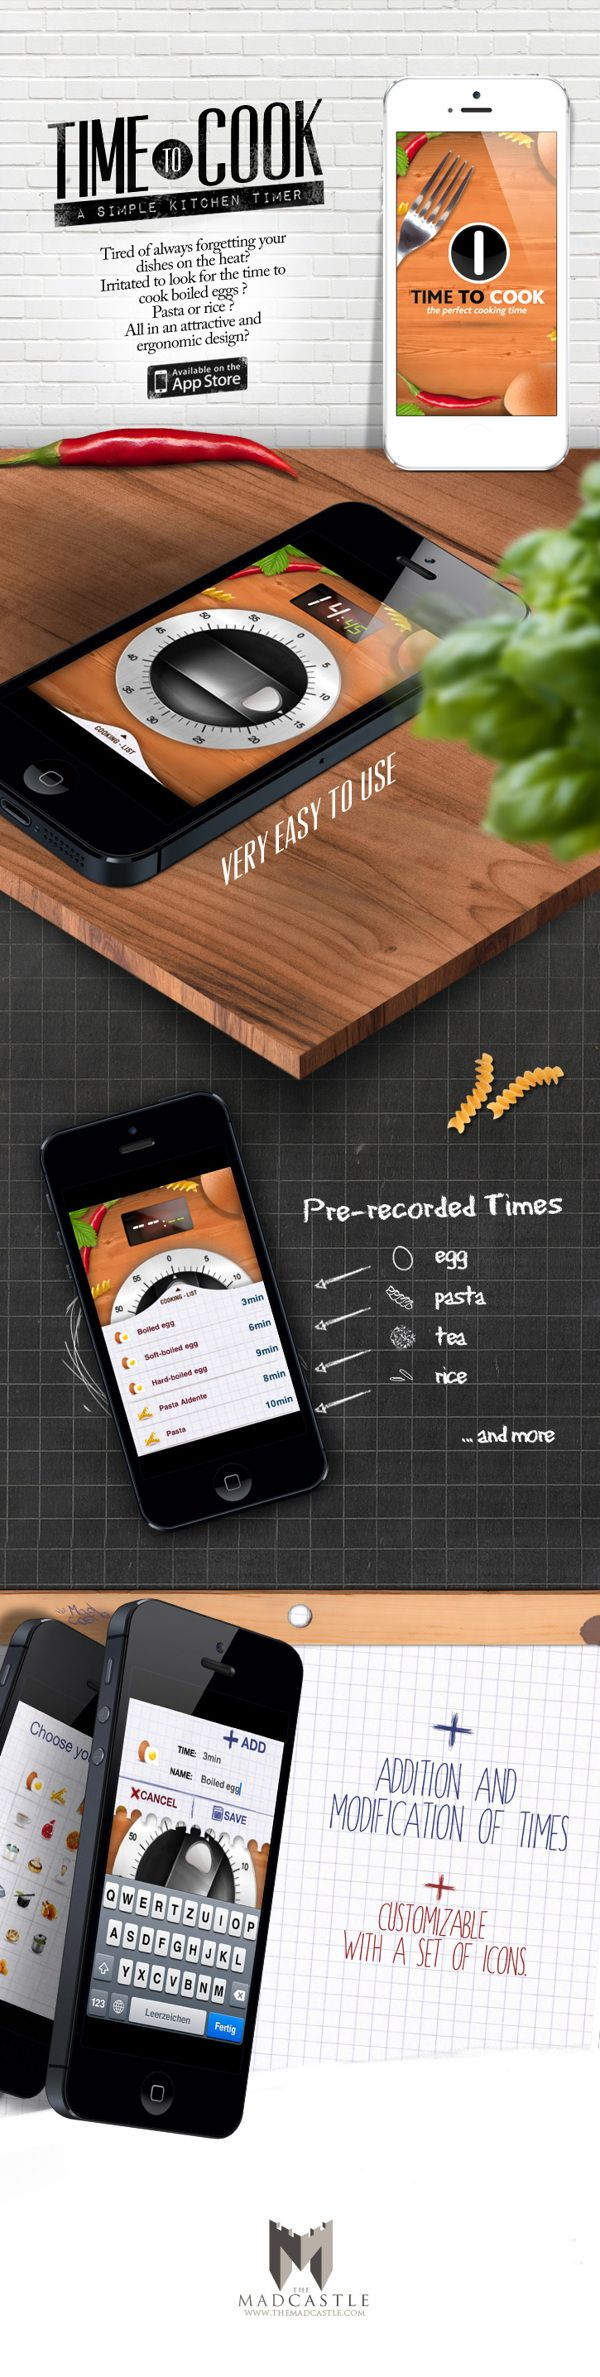 Time To Cook - maybe one day SAGE could make a real app thats fun and food related like this one. you know, one day...